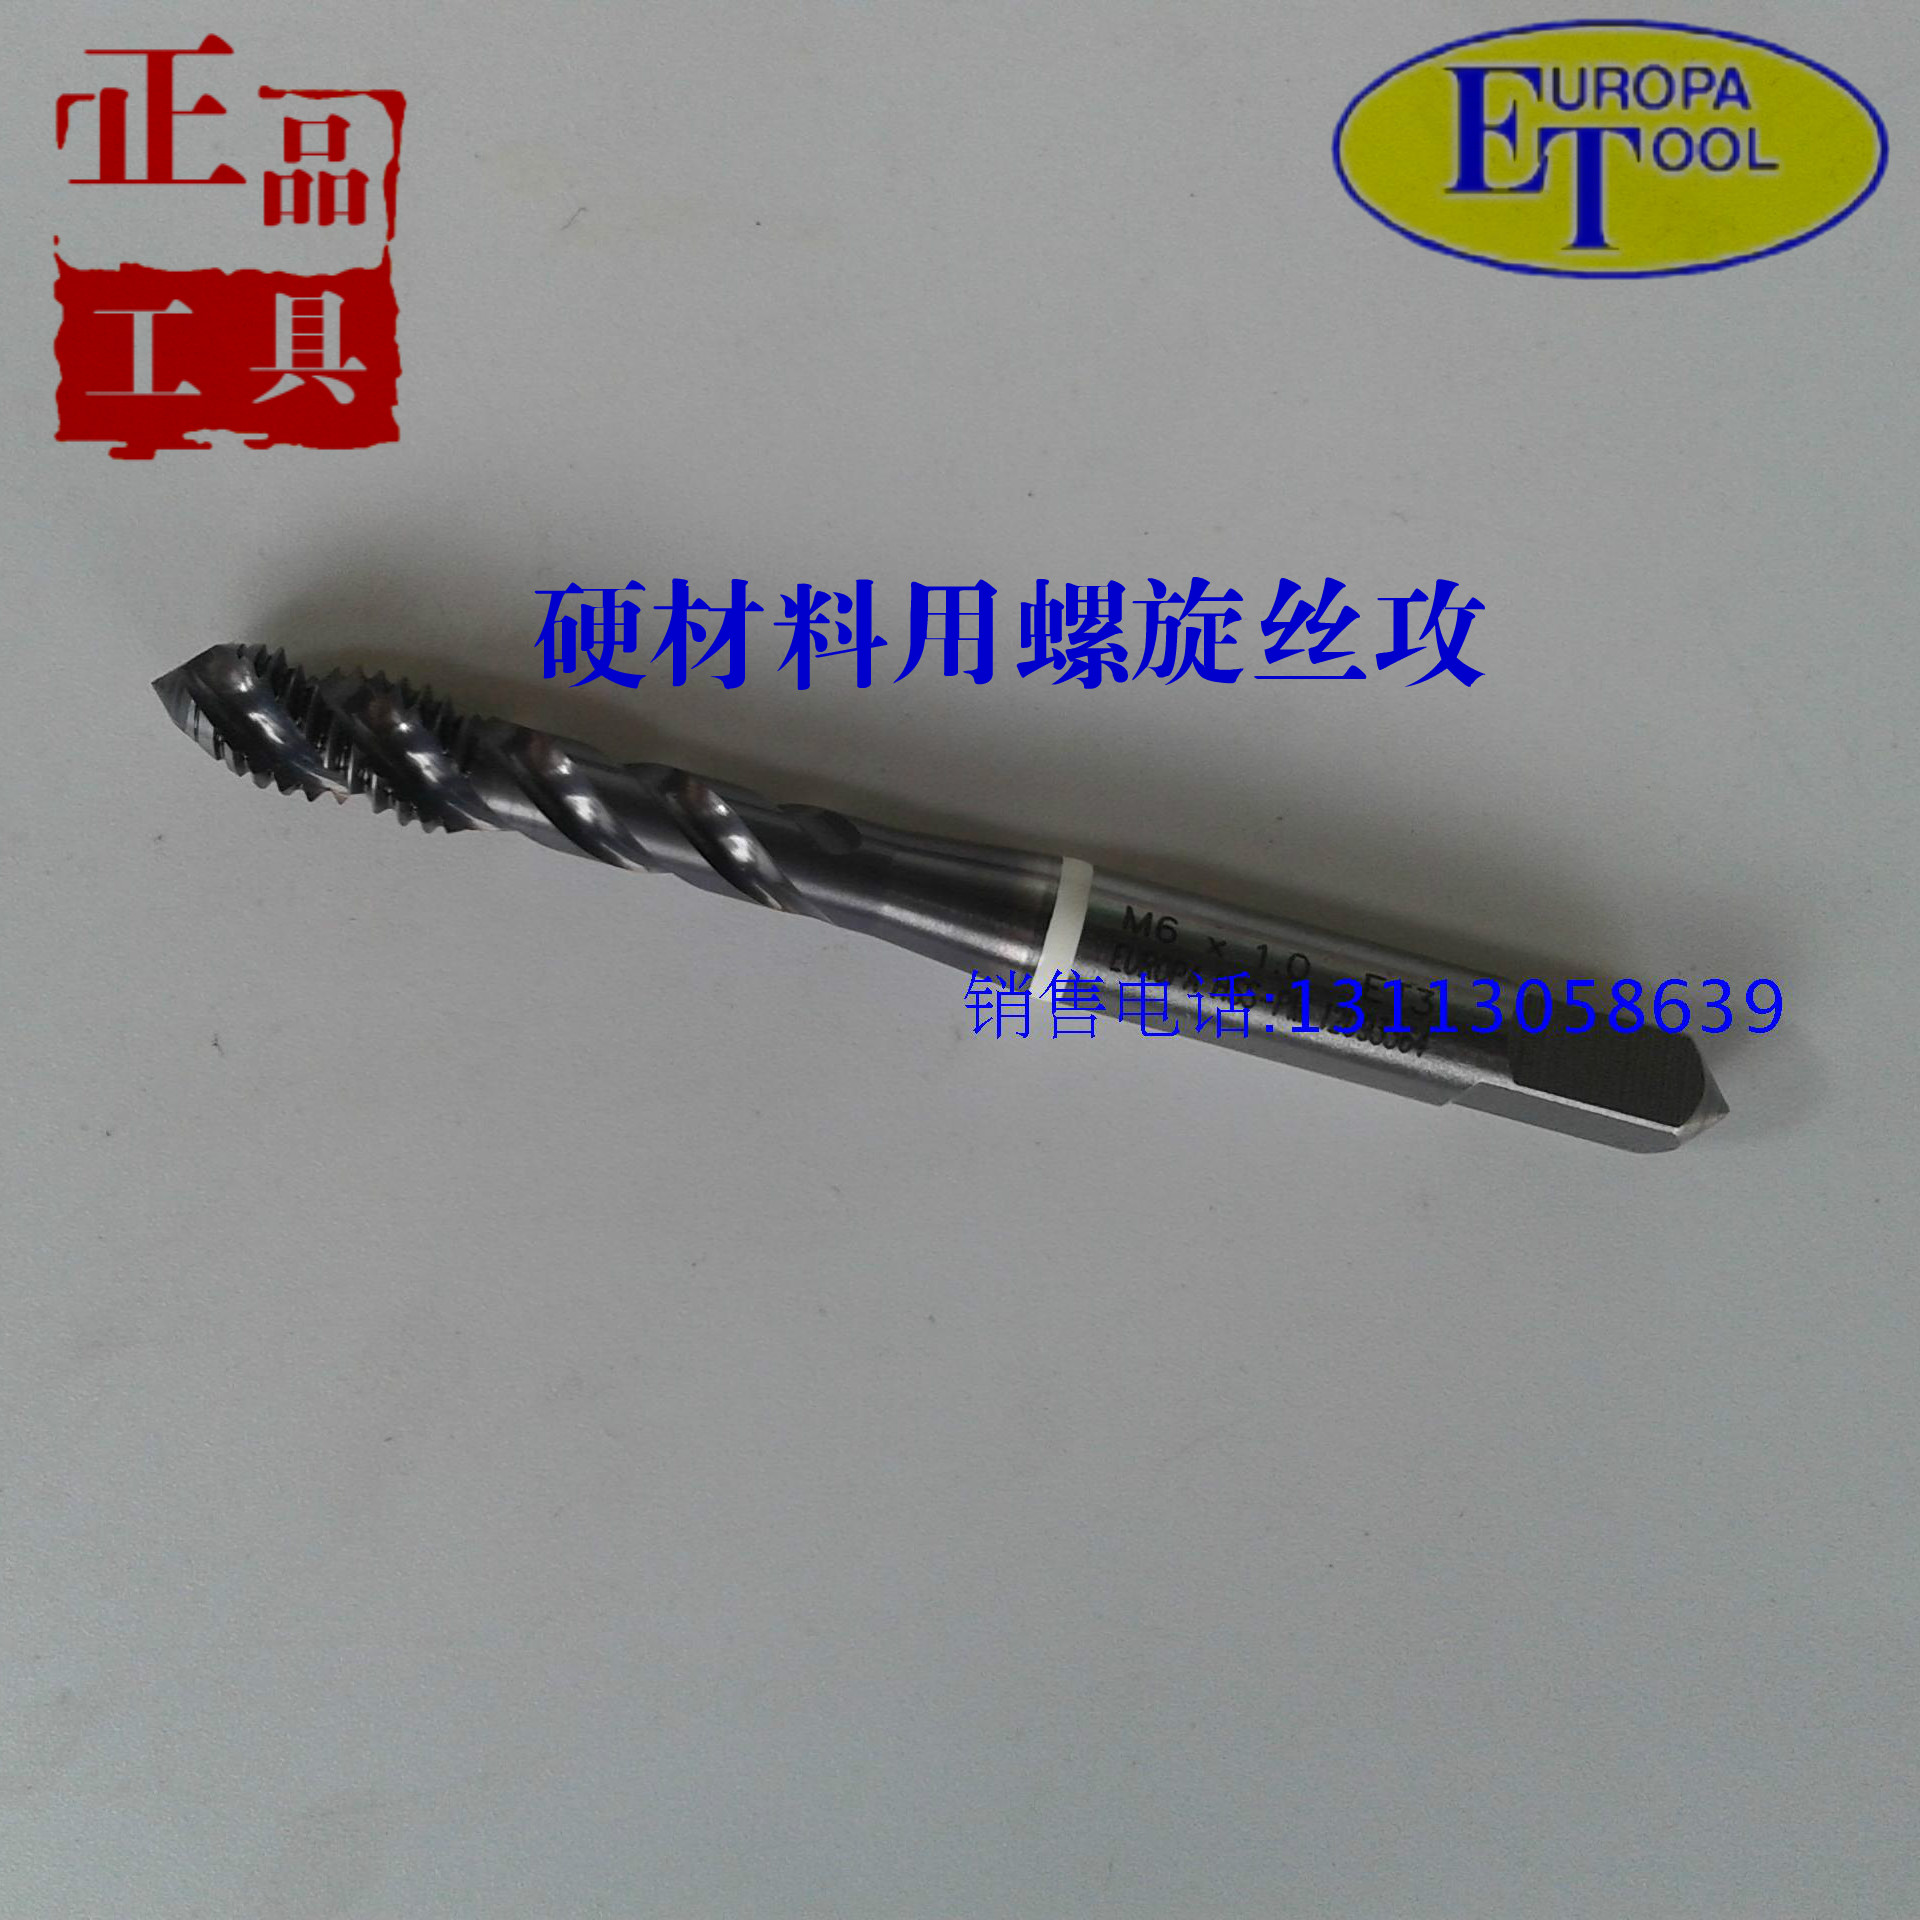 Authentic British ET EUROPA plating TICN M6*1M10M12M8PM ouba screw tap tapping for hard materials